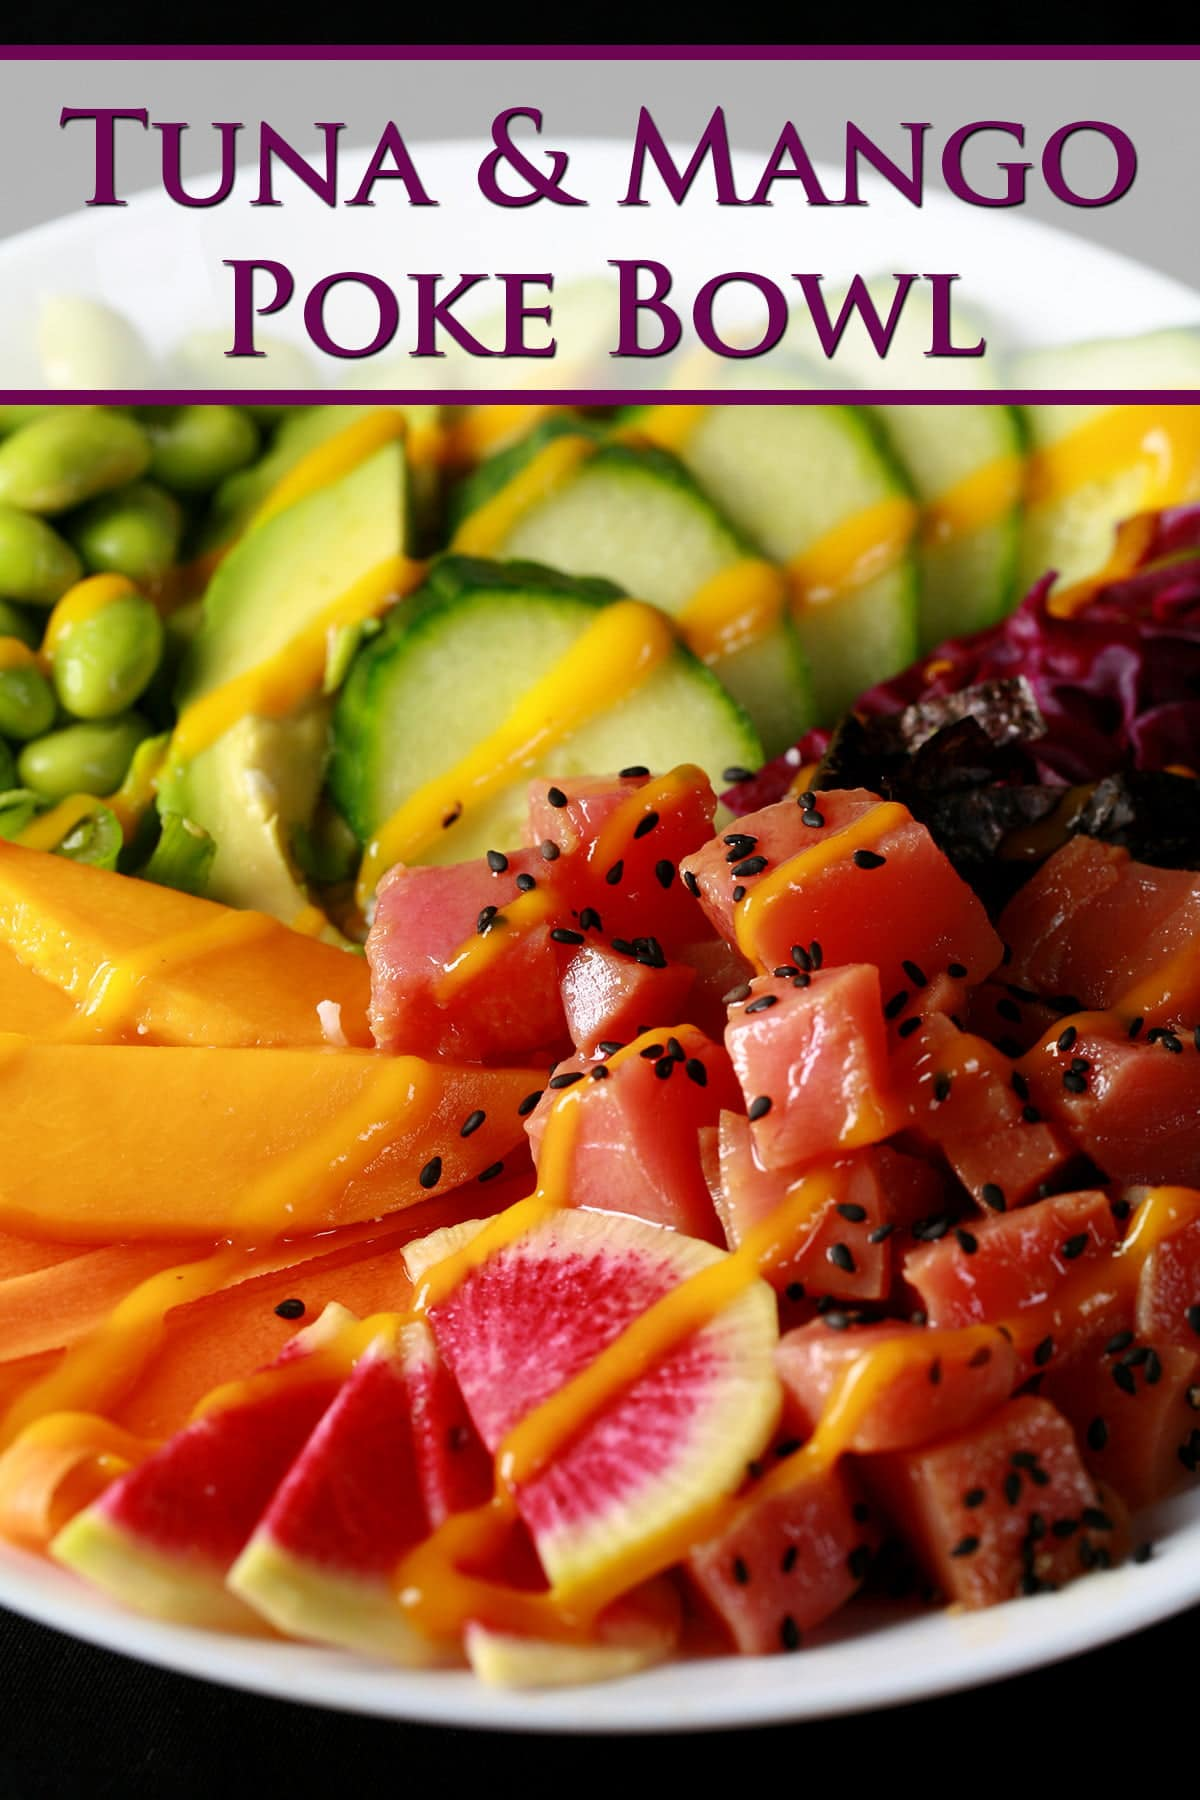 Close up view of a colourful bowl of tuna mango poke. There is a rainbow of vegetables and fruit, including purple cabbage, watermelon radish, carrots, mango, edamame, avocado, and cucumber.